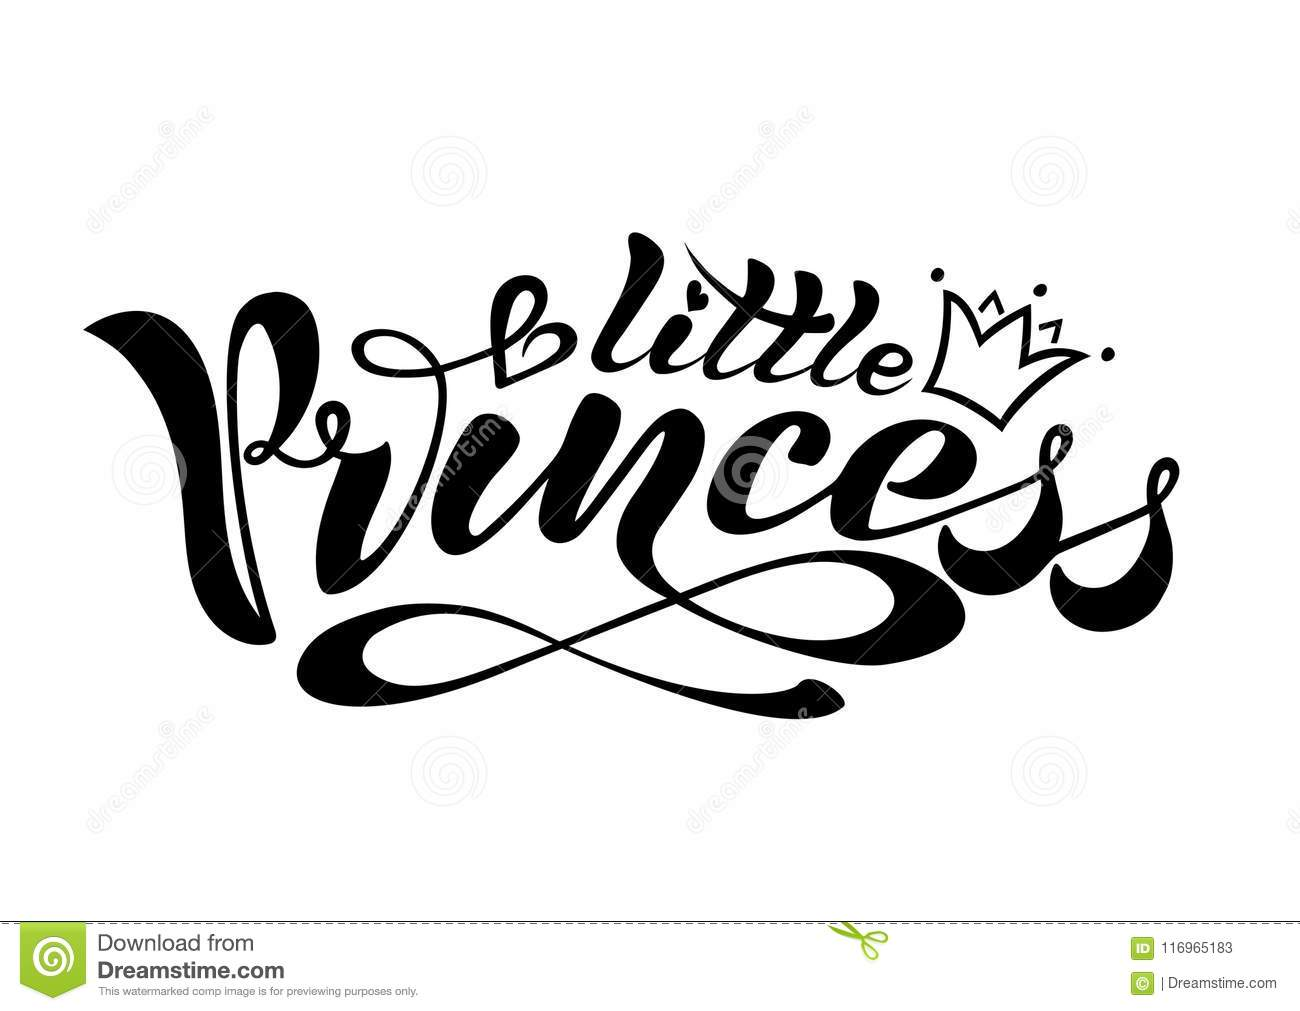 Handwritten text, calligraphy, lettering in vector format, a little princess with a crown for a postcard, a poster, a seal, a logo